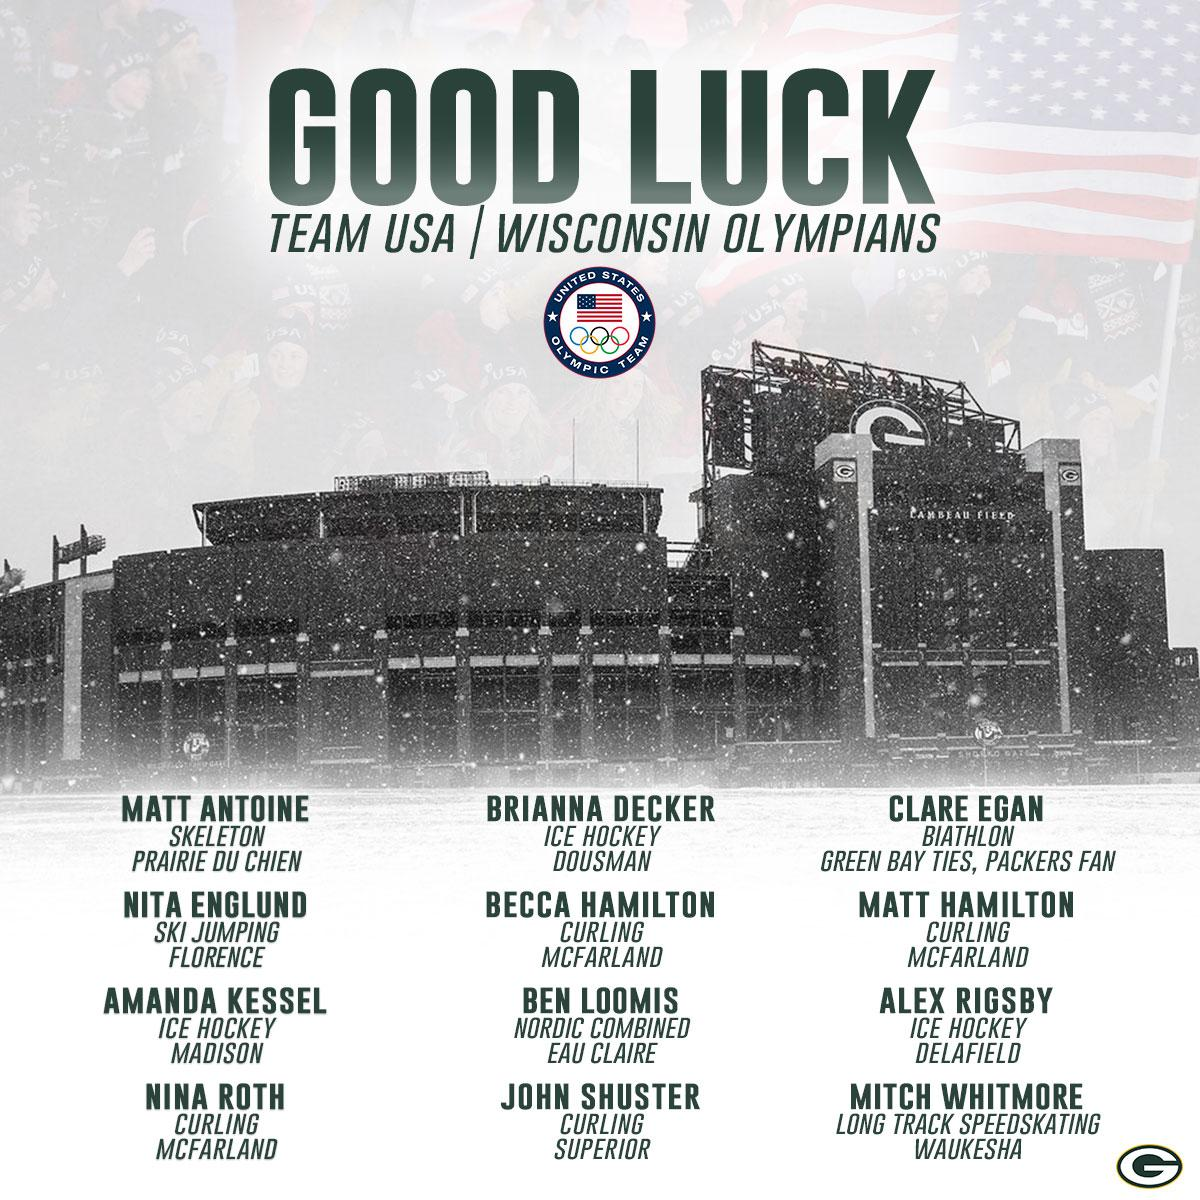 Let's go #TeamUSA, especially our Wisconsin Olympians!  #Olympics https://t.co/1HkWTAwEJm